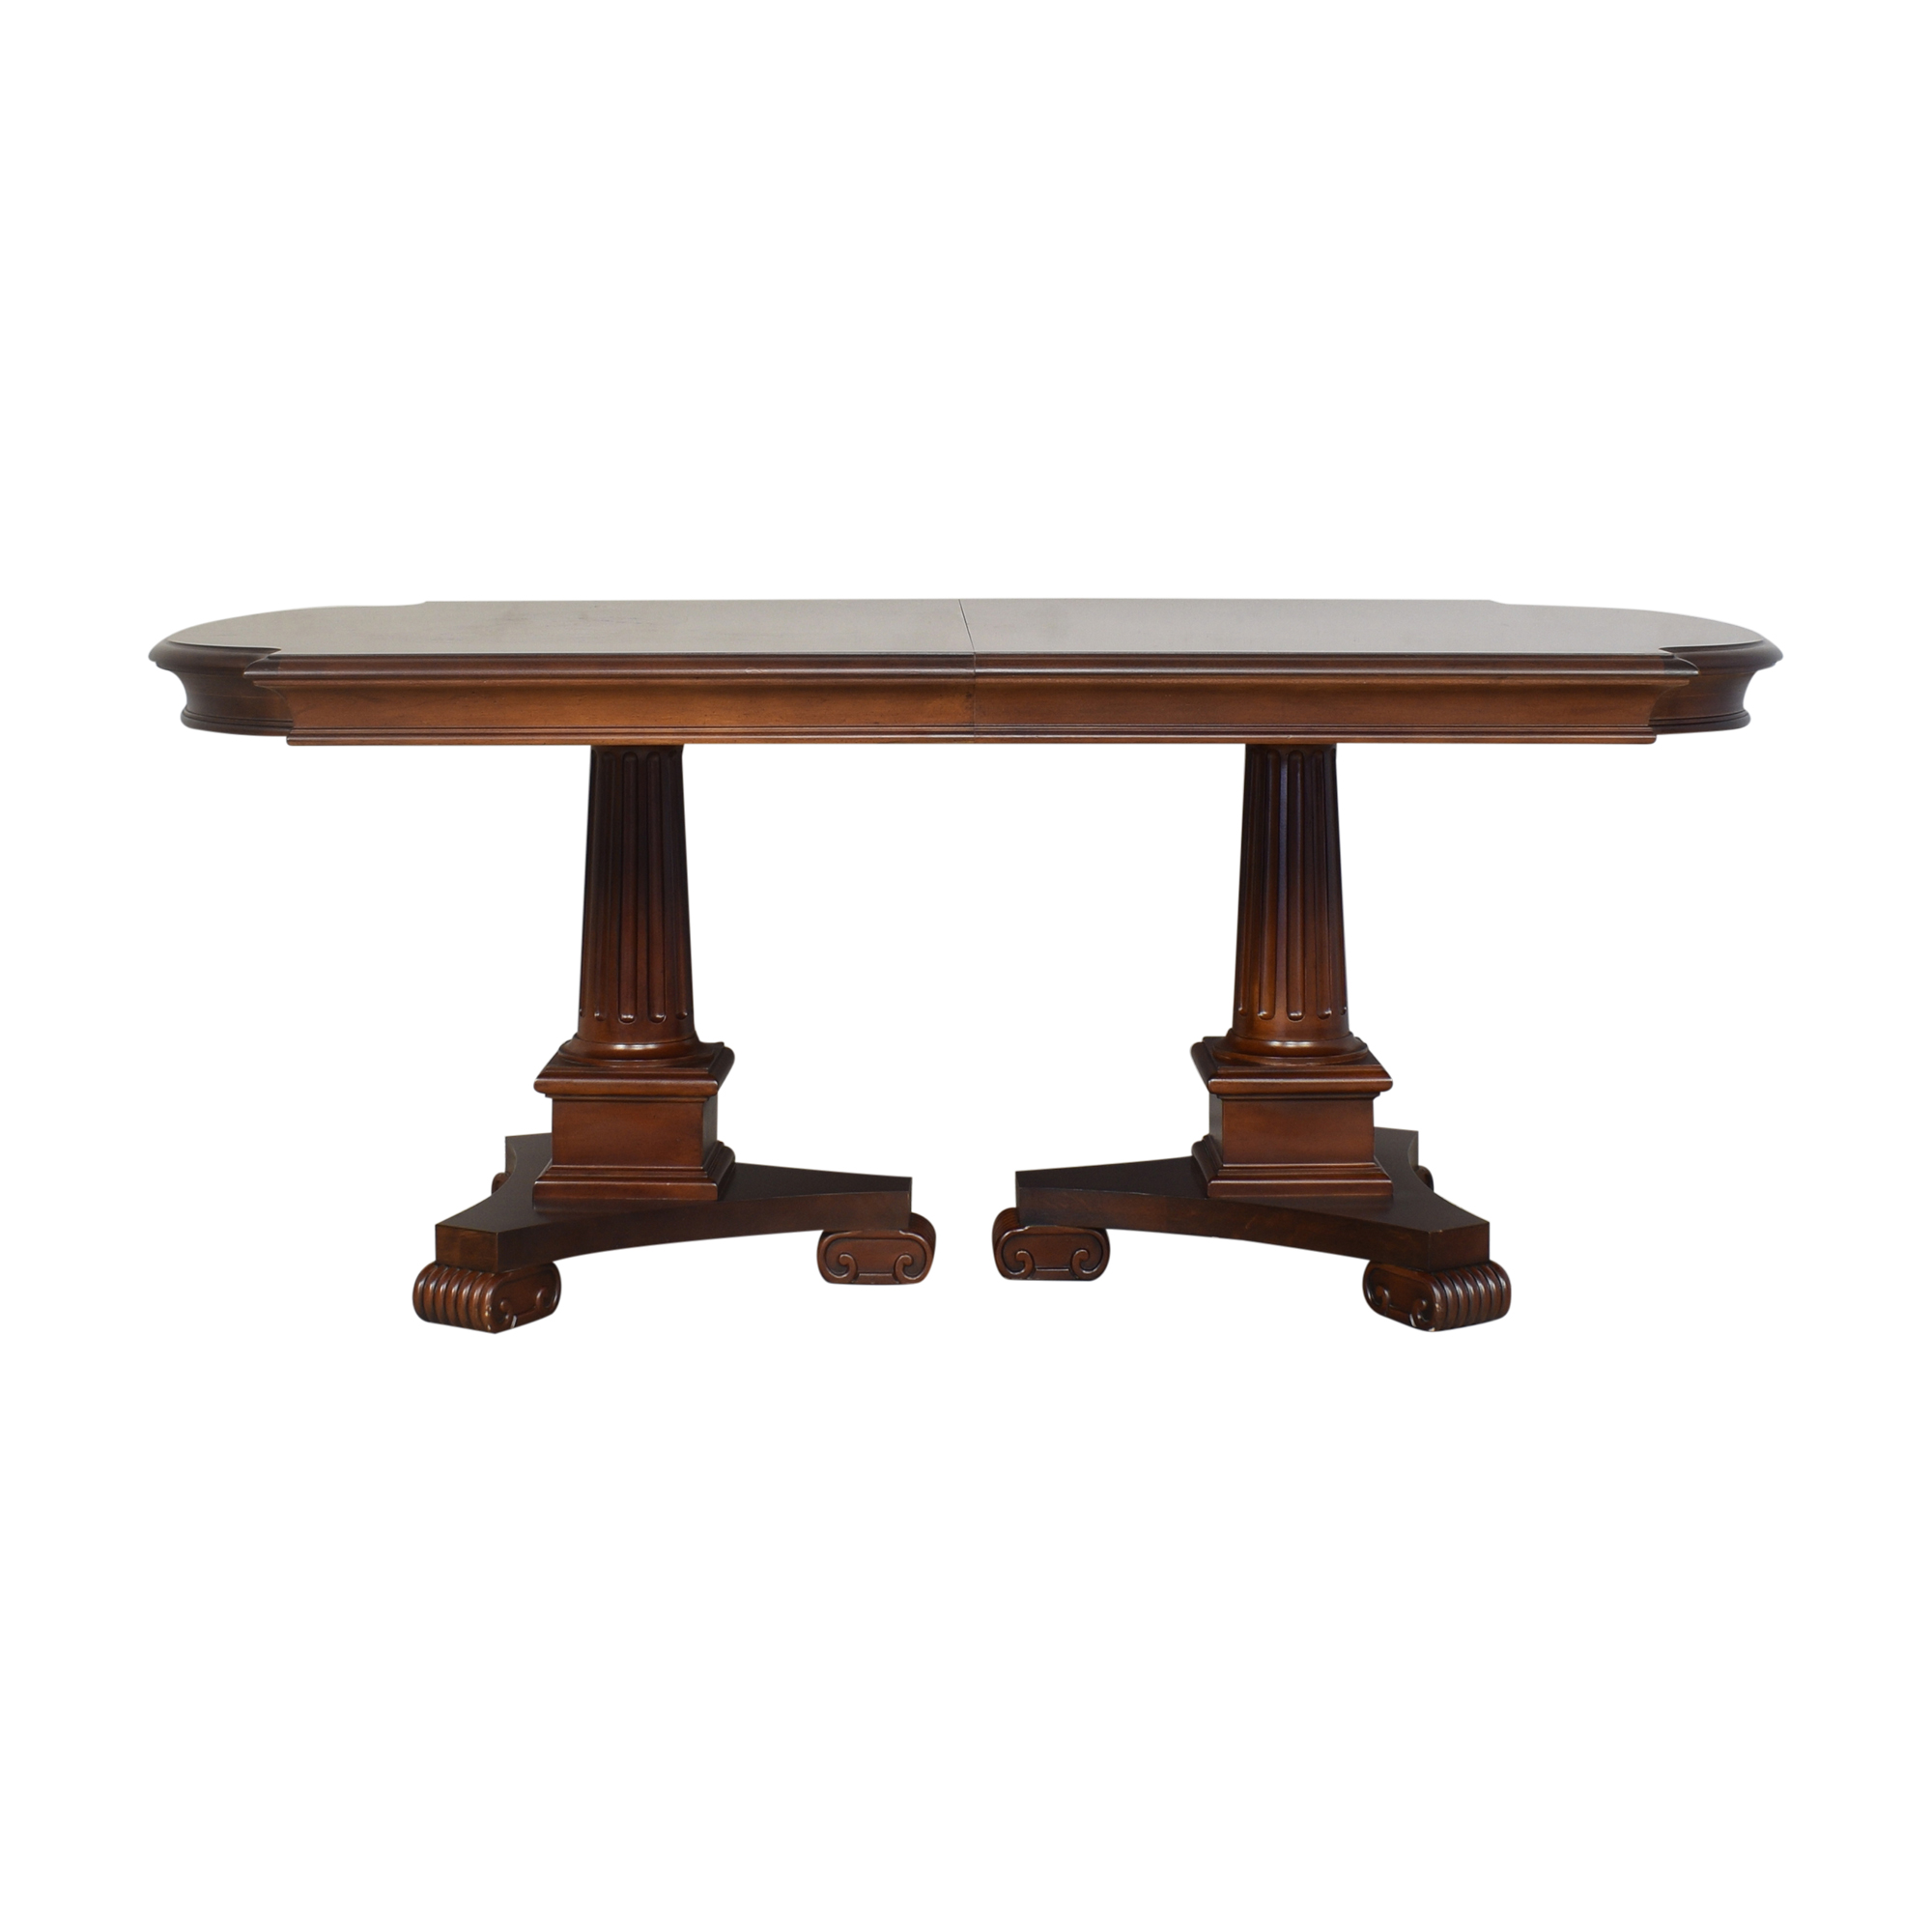 Stanley Furniture Double Pedestal Dining Table / Dinner Tables